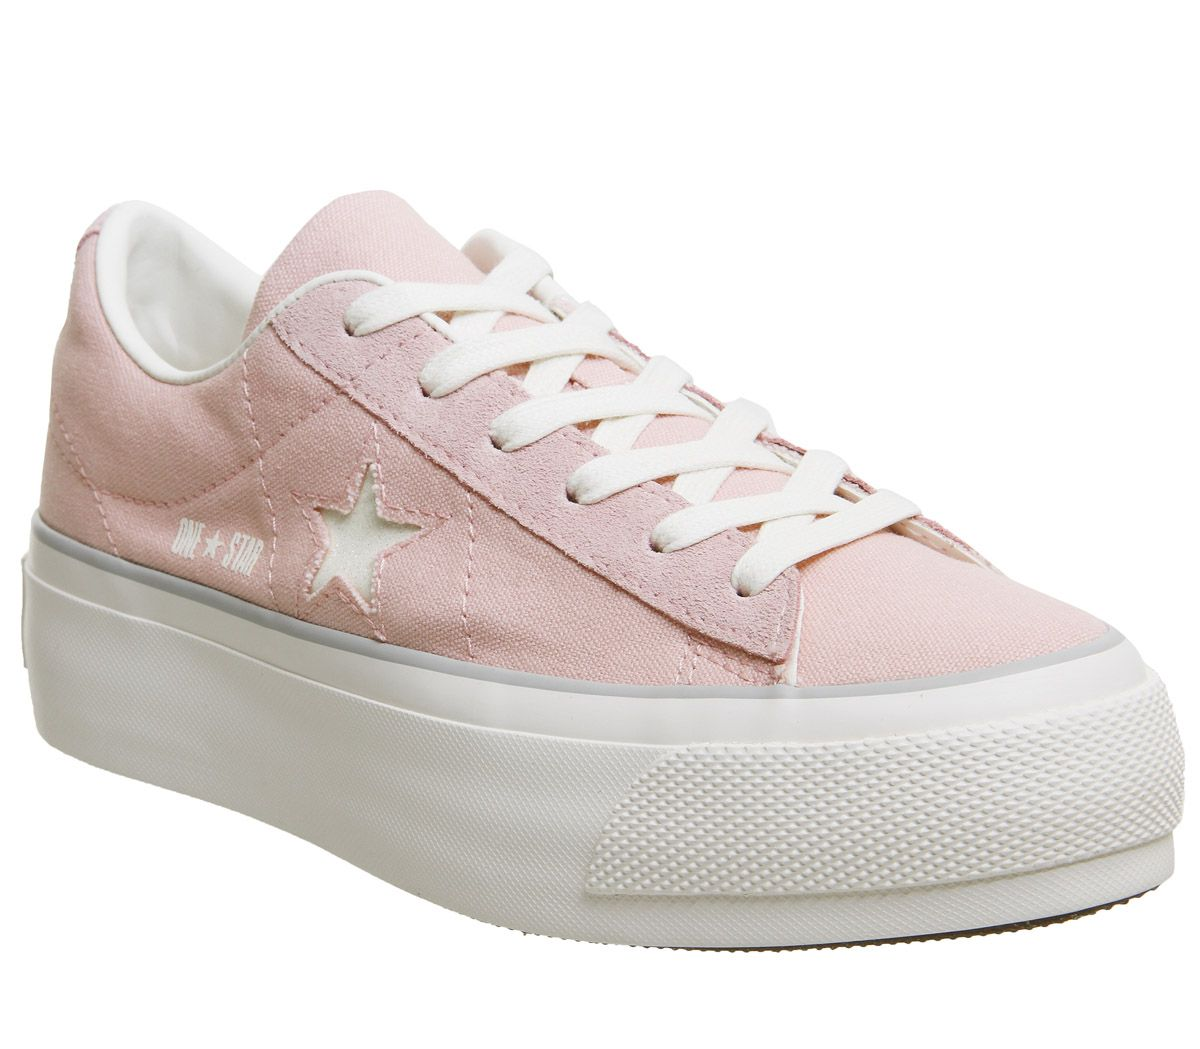 8227b69a8344 Converse One Star Platforms Pink White Glitter - Hers trainers